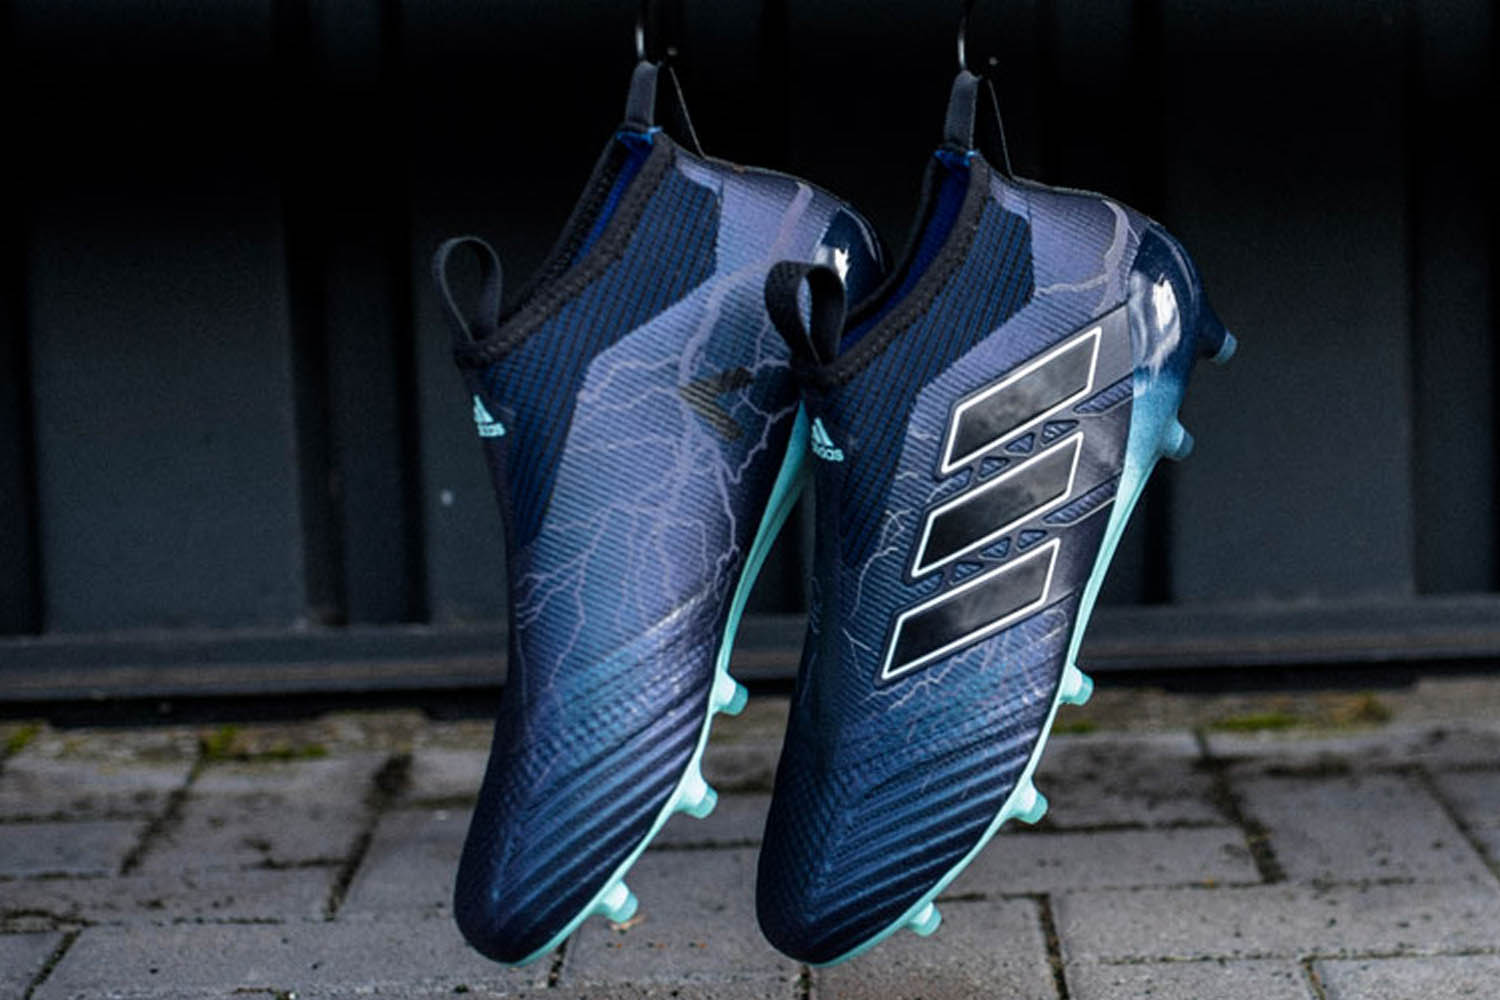 dc7a6d02a961 Limited Edition Adidas 2017-18 Thunder Storm Boots Pack Released ...